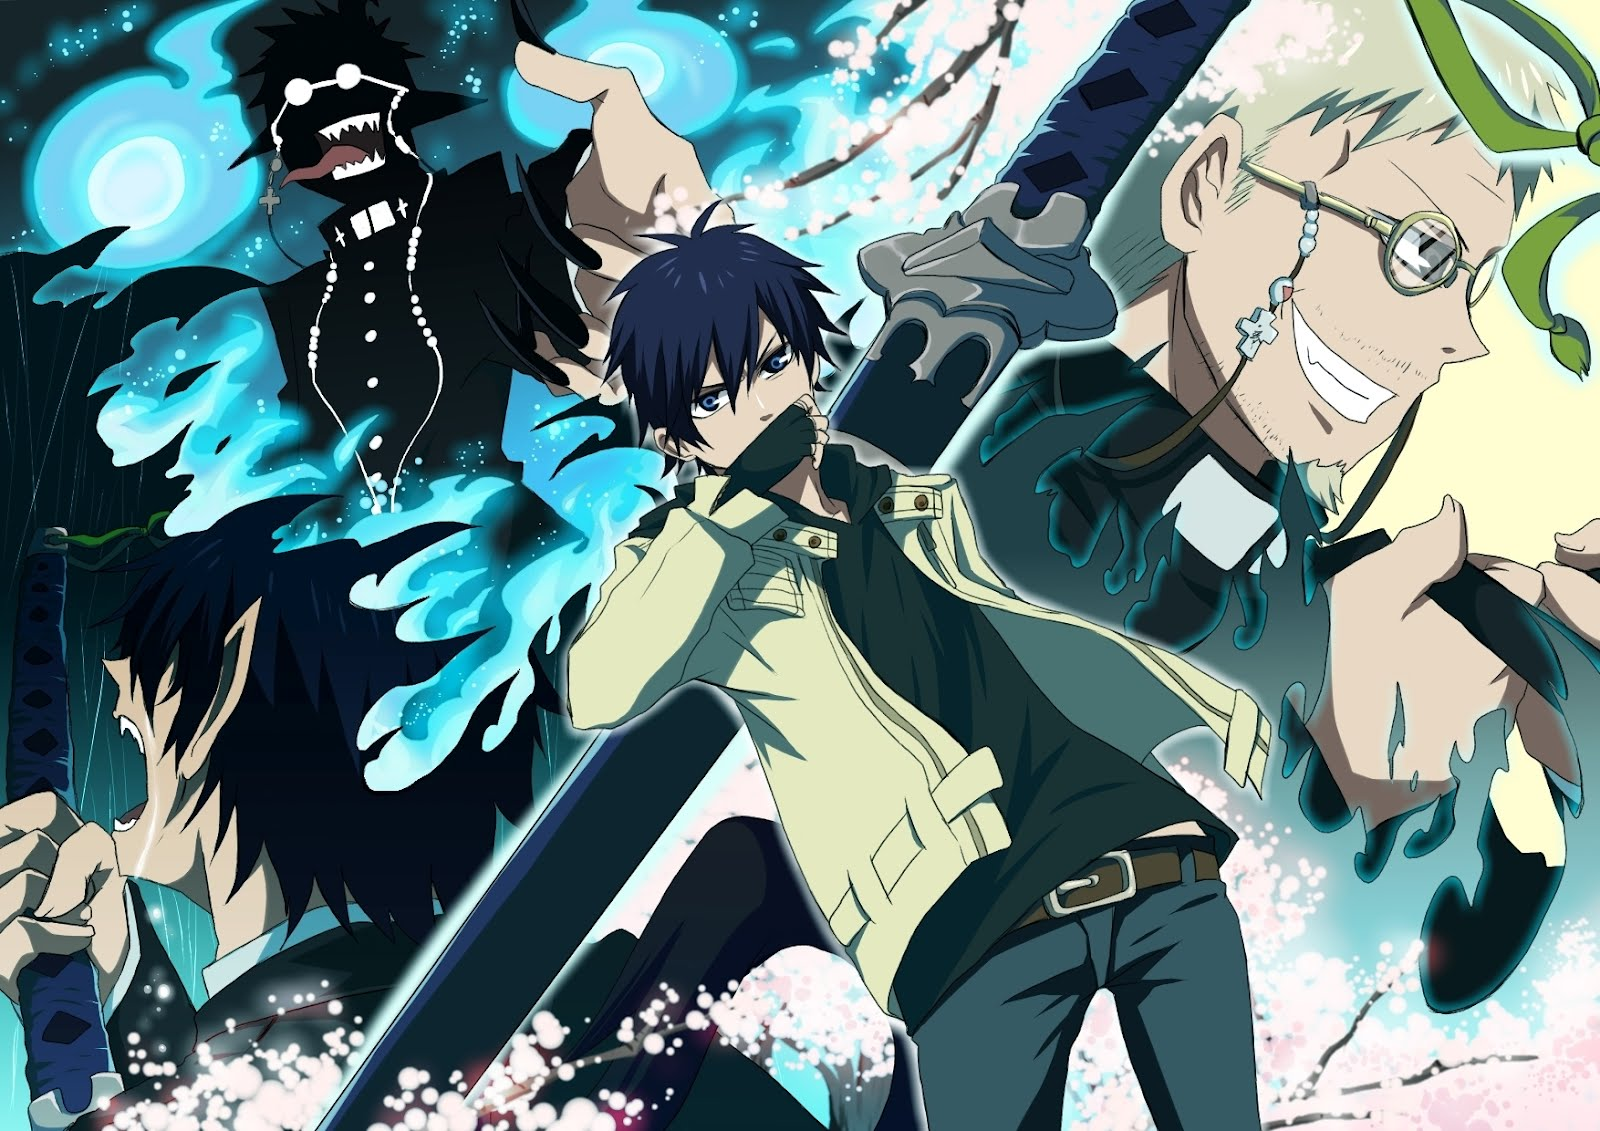 Blue Exorcist Movie U.S. Premiere Hosted at Anime Expo